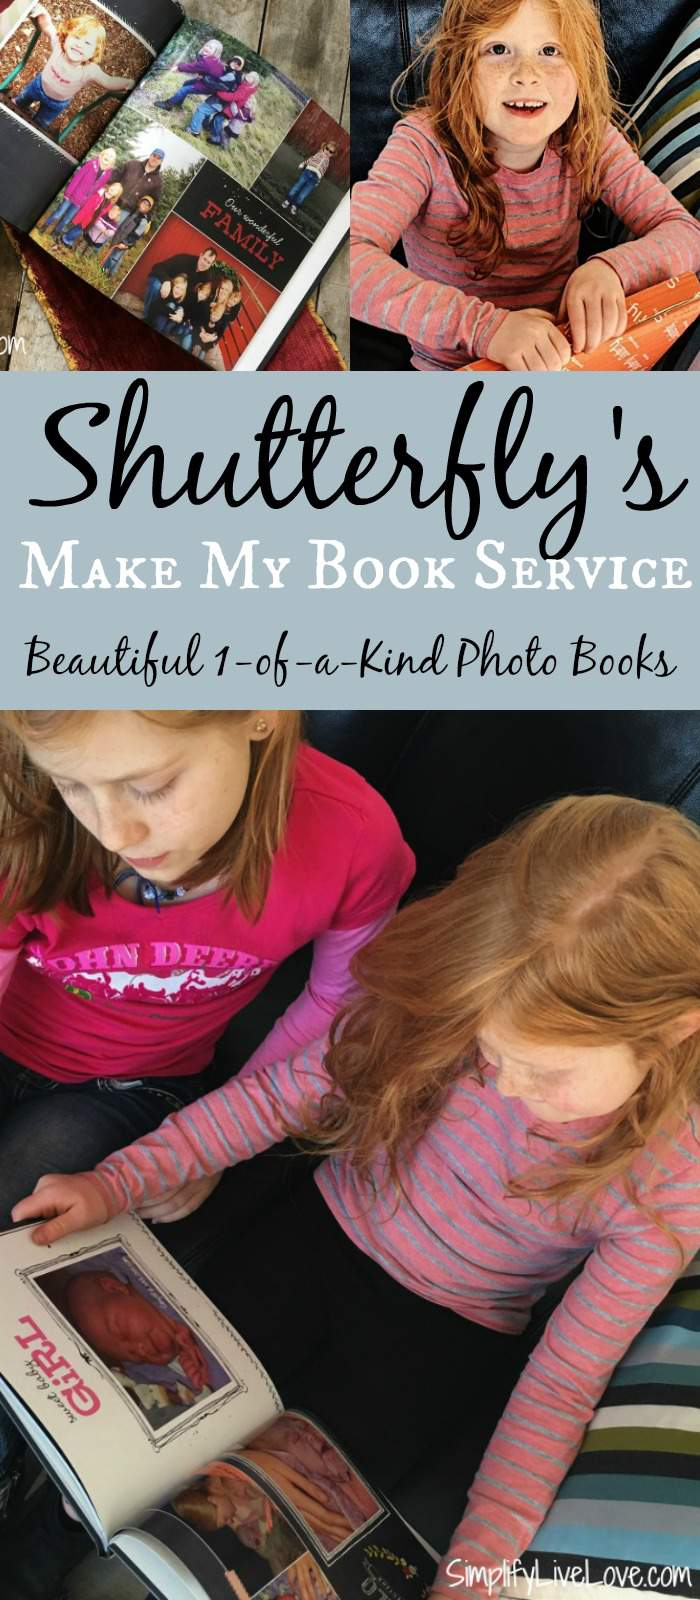 Shutterfly's Make My Book Service. Beautiful, one of a kind photo books. Easy and quick - perfect to commemorate special occasions and fun trips.